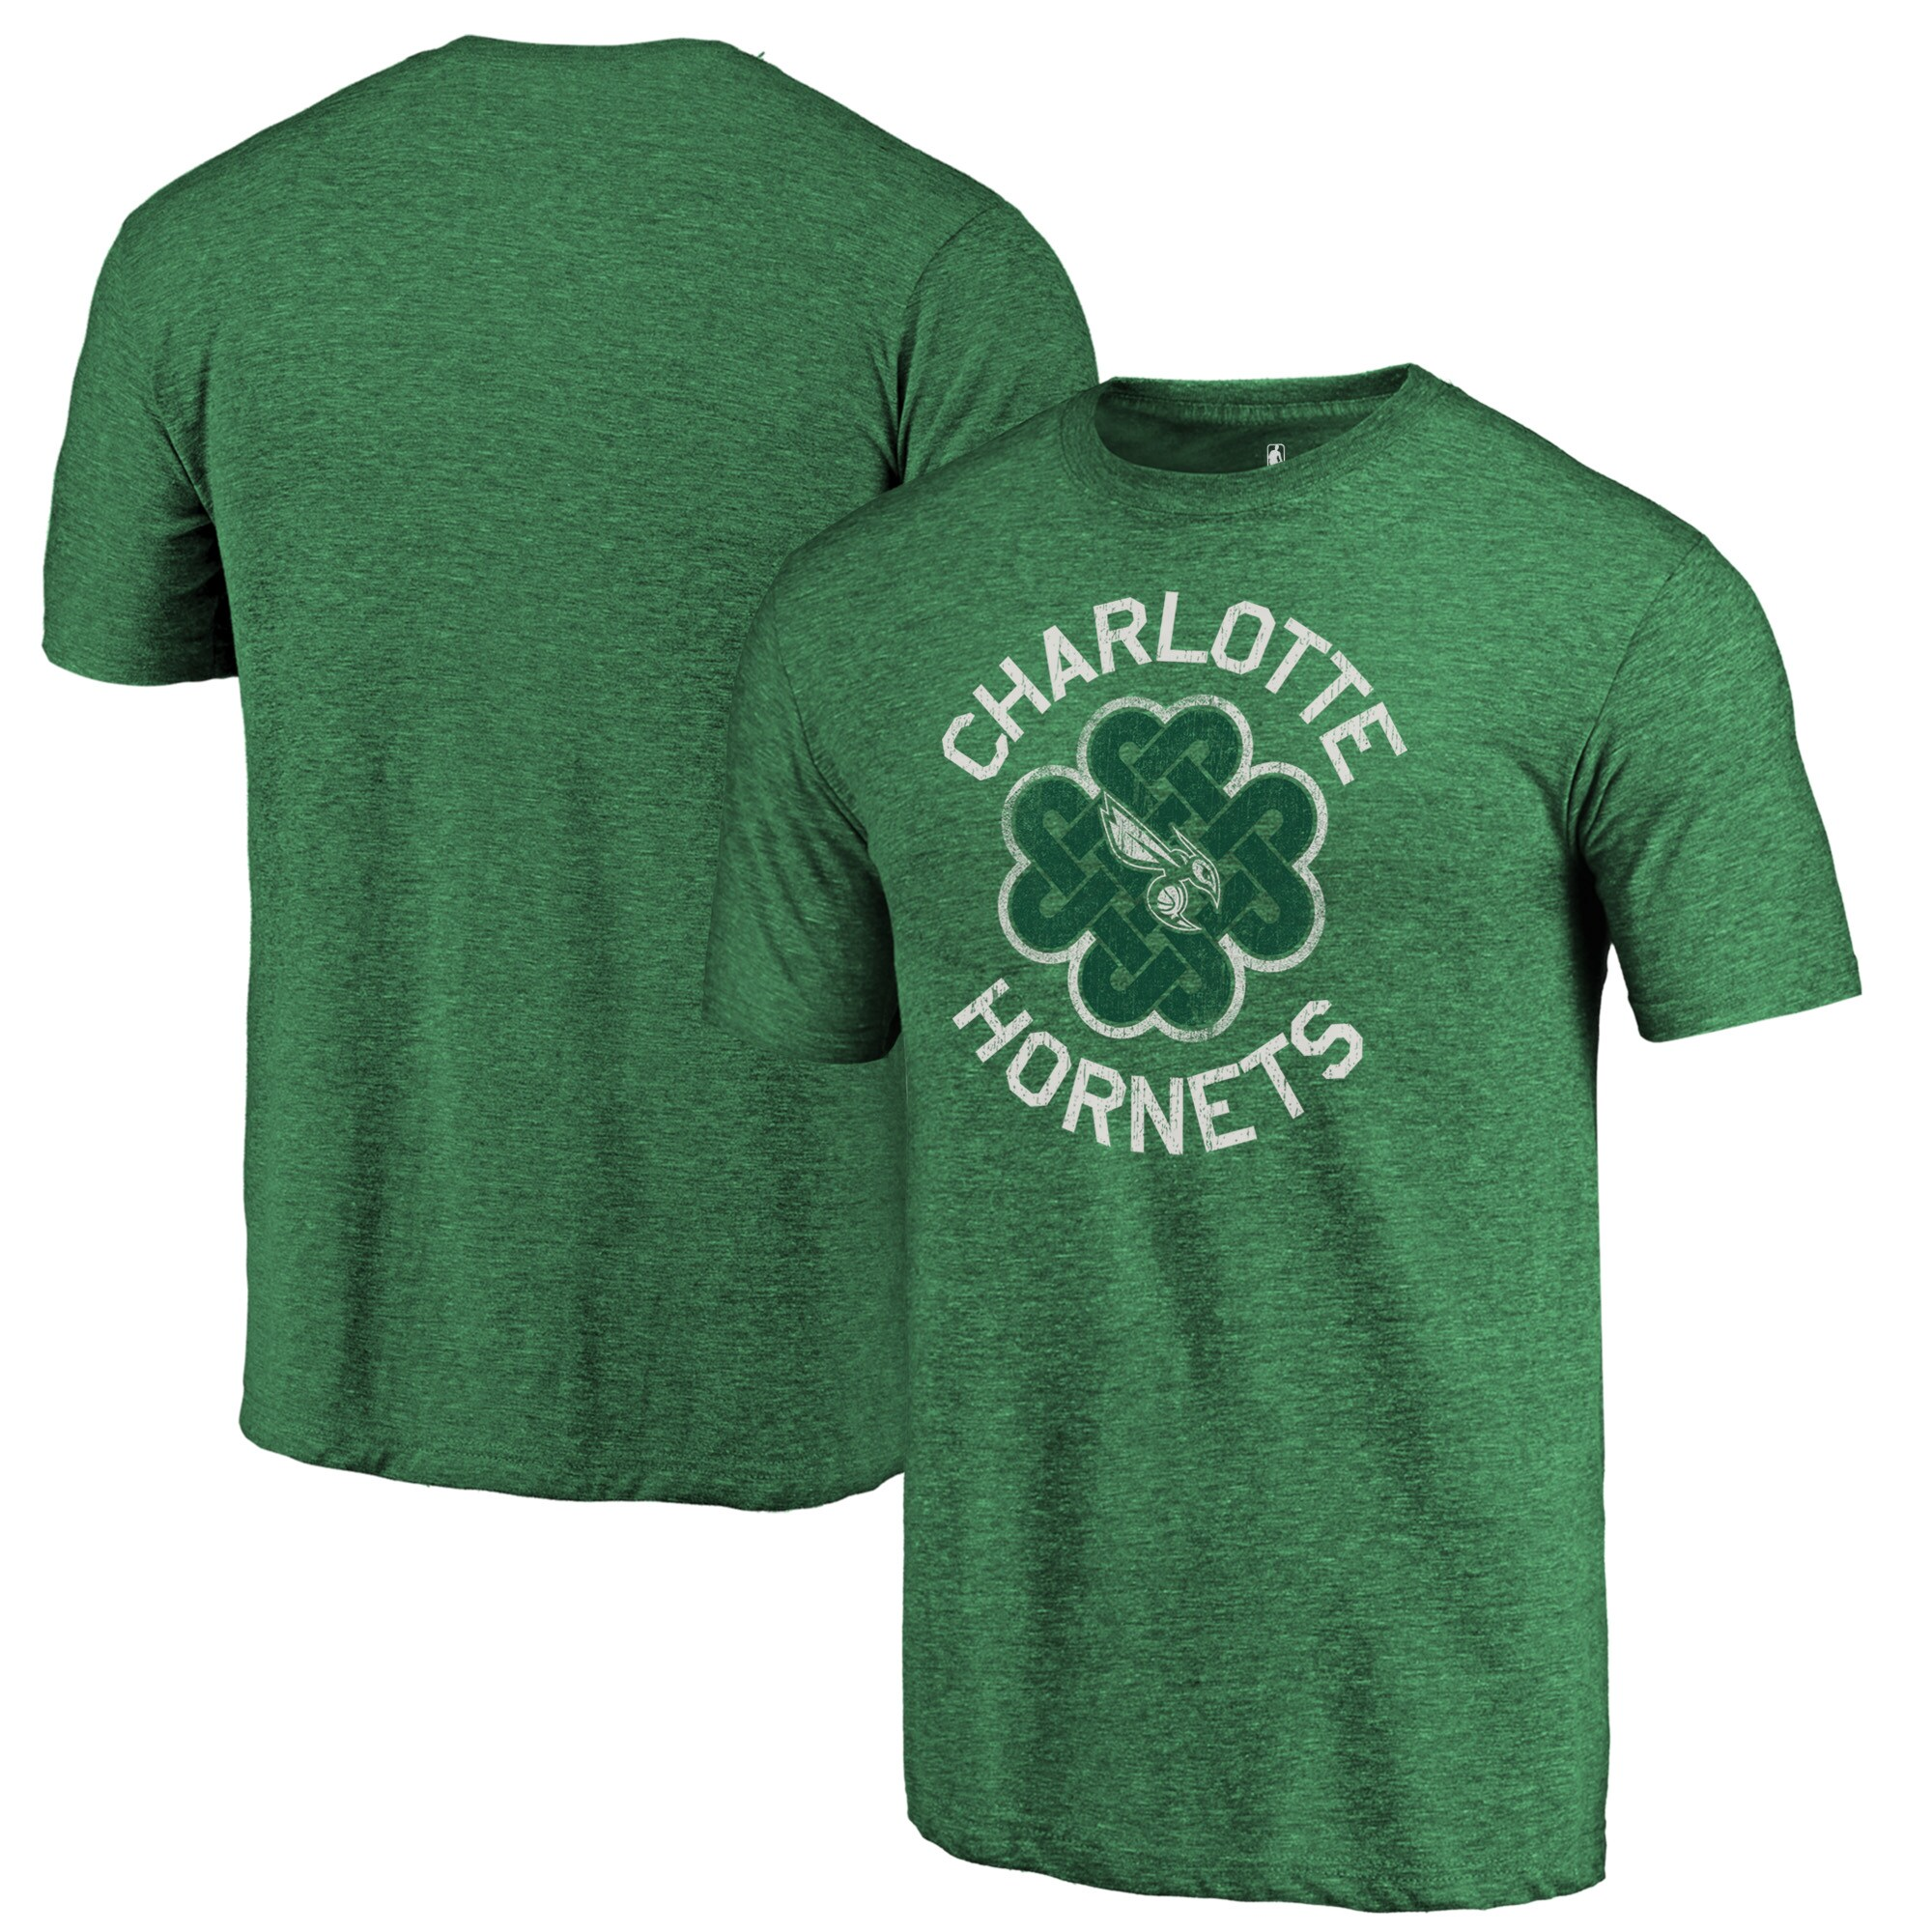 Charlotte Hornets Fanatics Branded St. Patrick's Day Luck Tradition Tri-Blend T-Shirt - Green